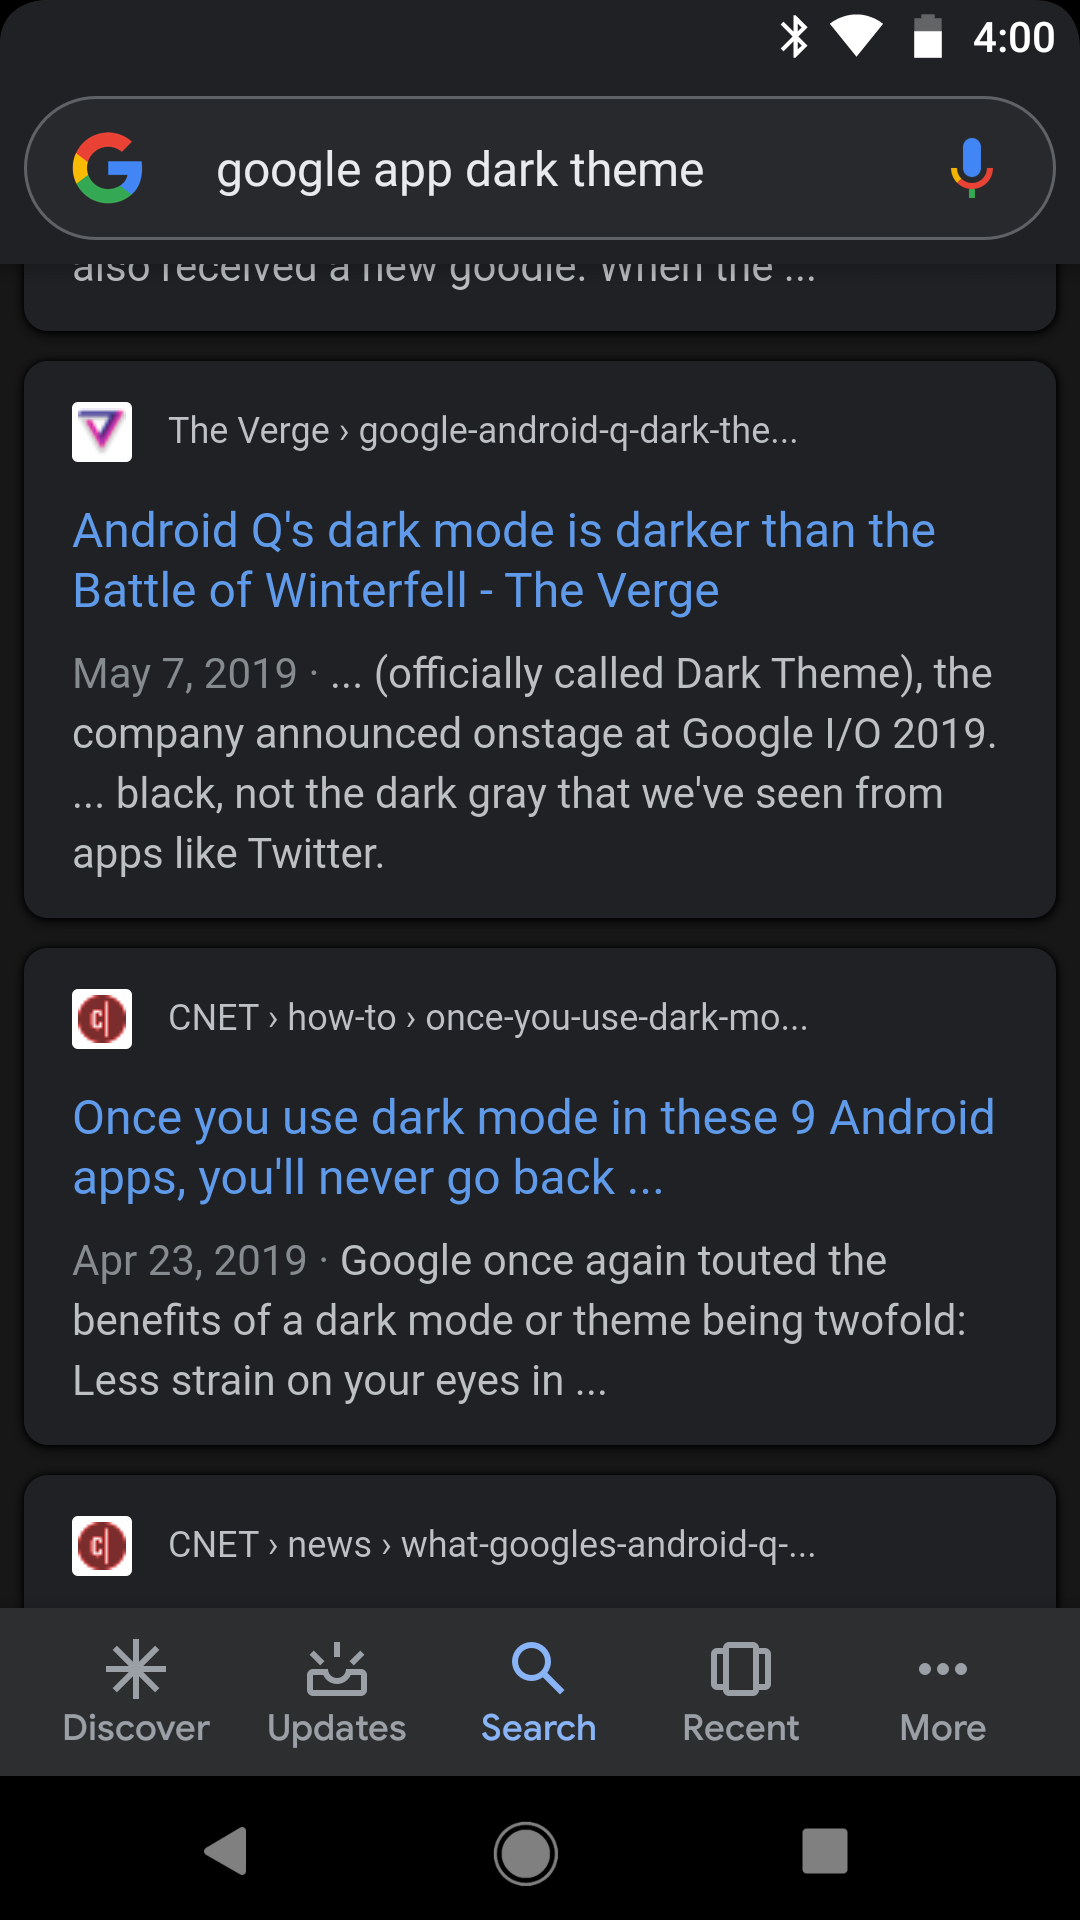 Google app testing dark theme for Search, Discover [Gallery